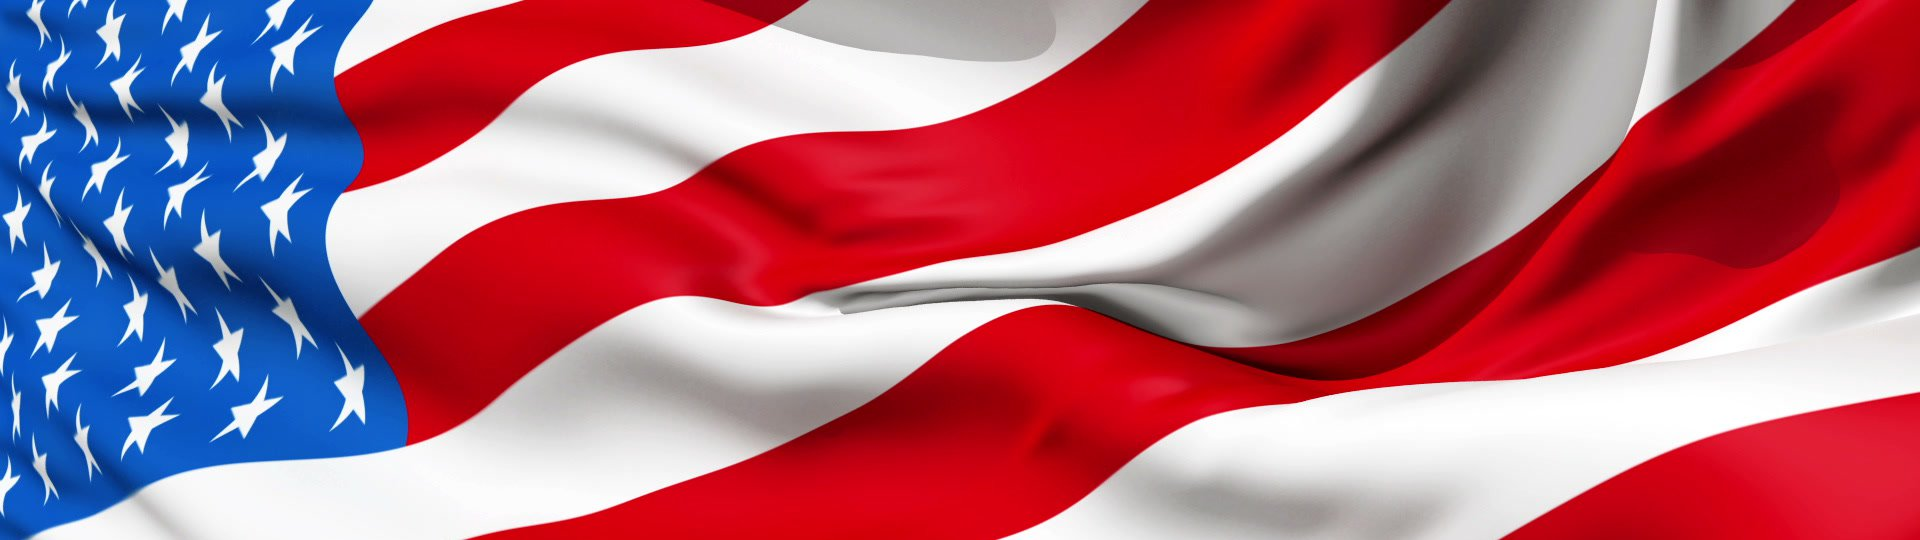 Realistic 3d seamless looping USA flag waving in the wind. | Realistic 3d seamless looping USA(United States) flag waving in the wind. - ID:11090